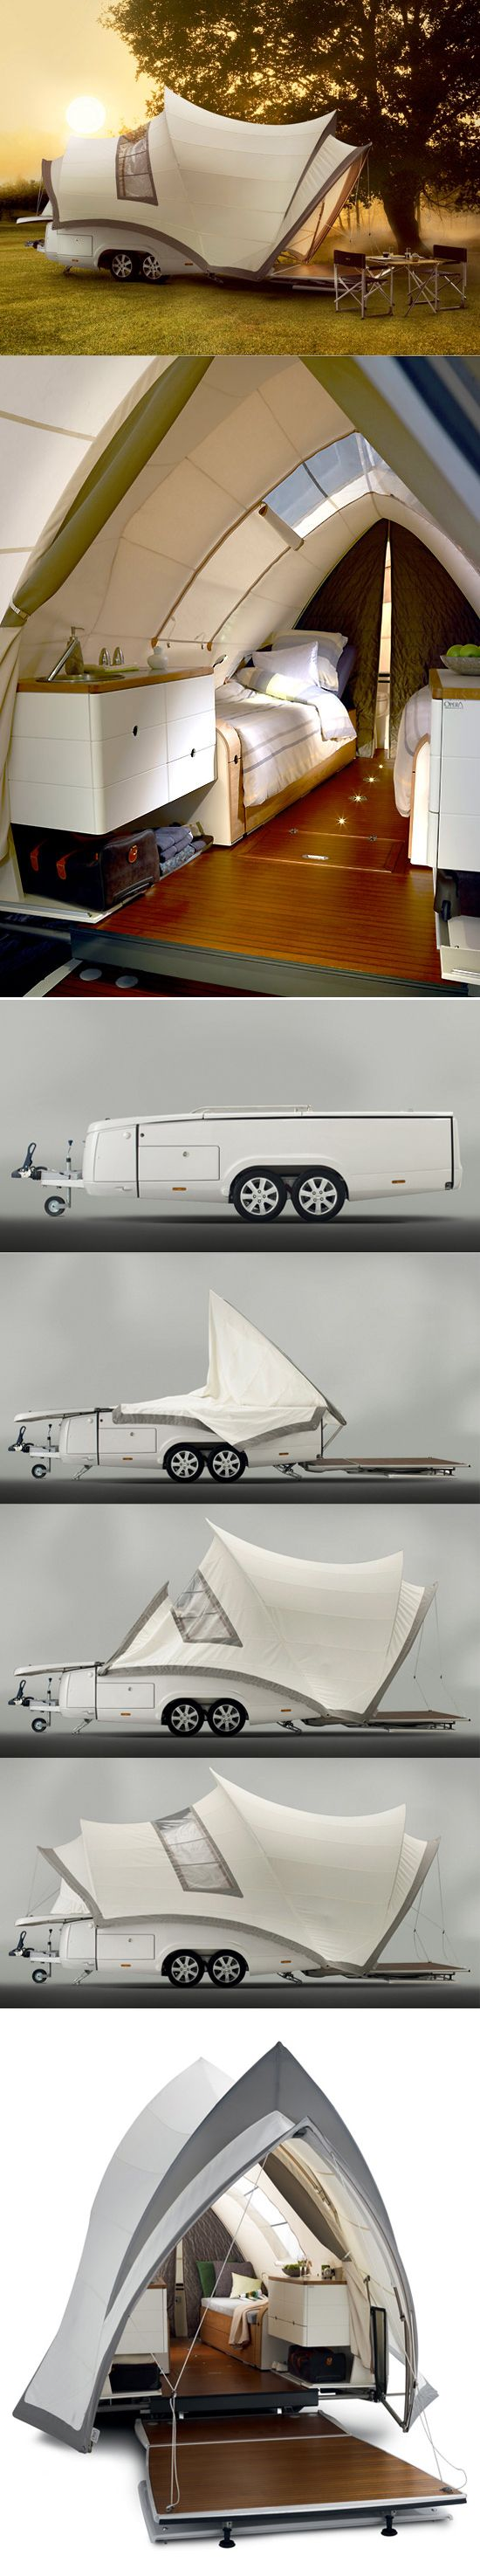 isnt this the coolest thingy ever on earth?!!?      Sydney Opera house inspired? Glamping, but a cool design (Tent Camping Hacks)